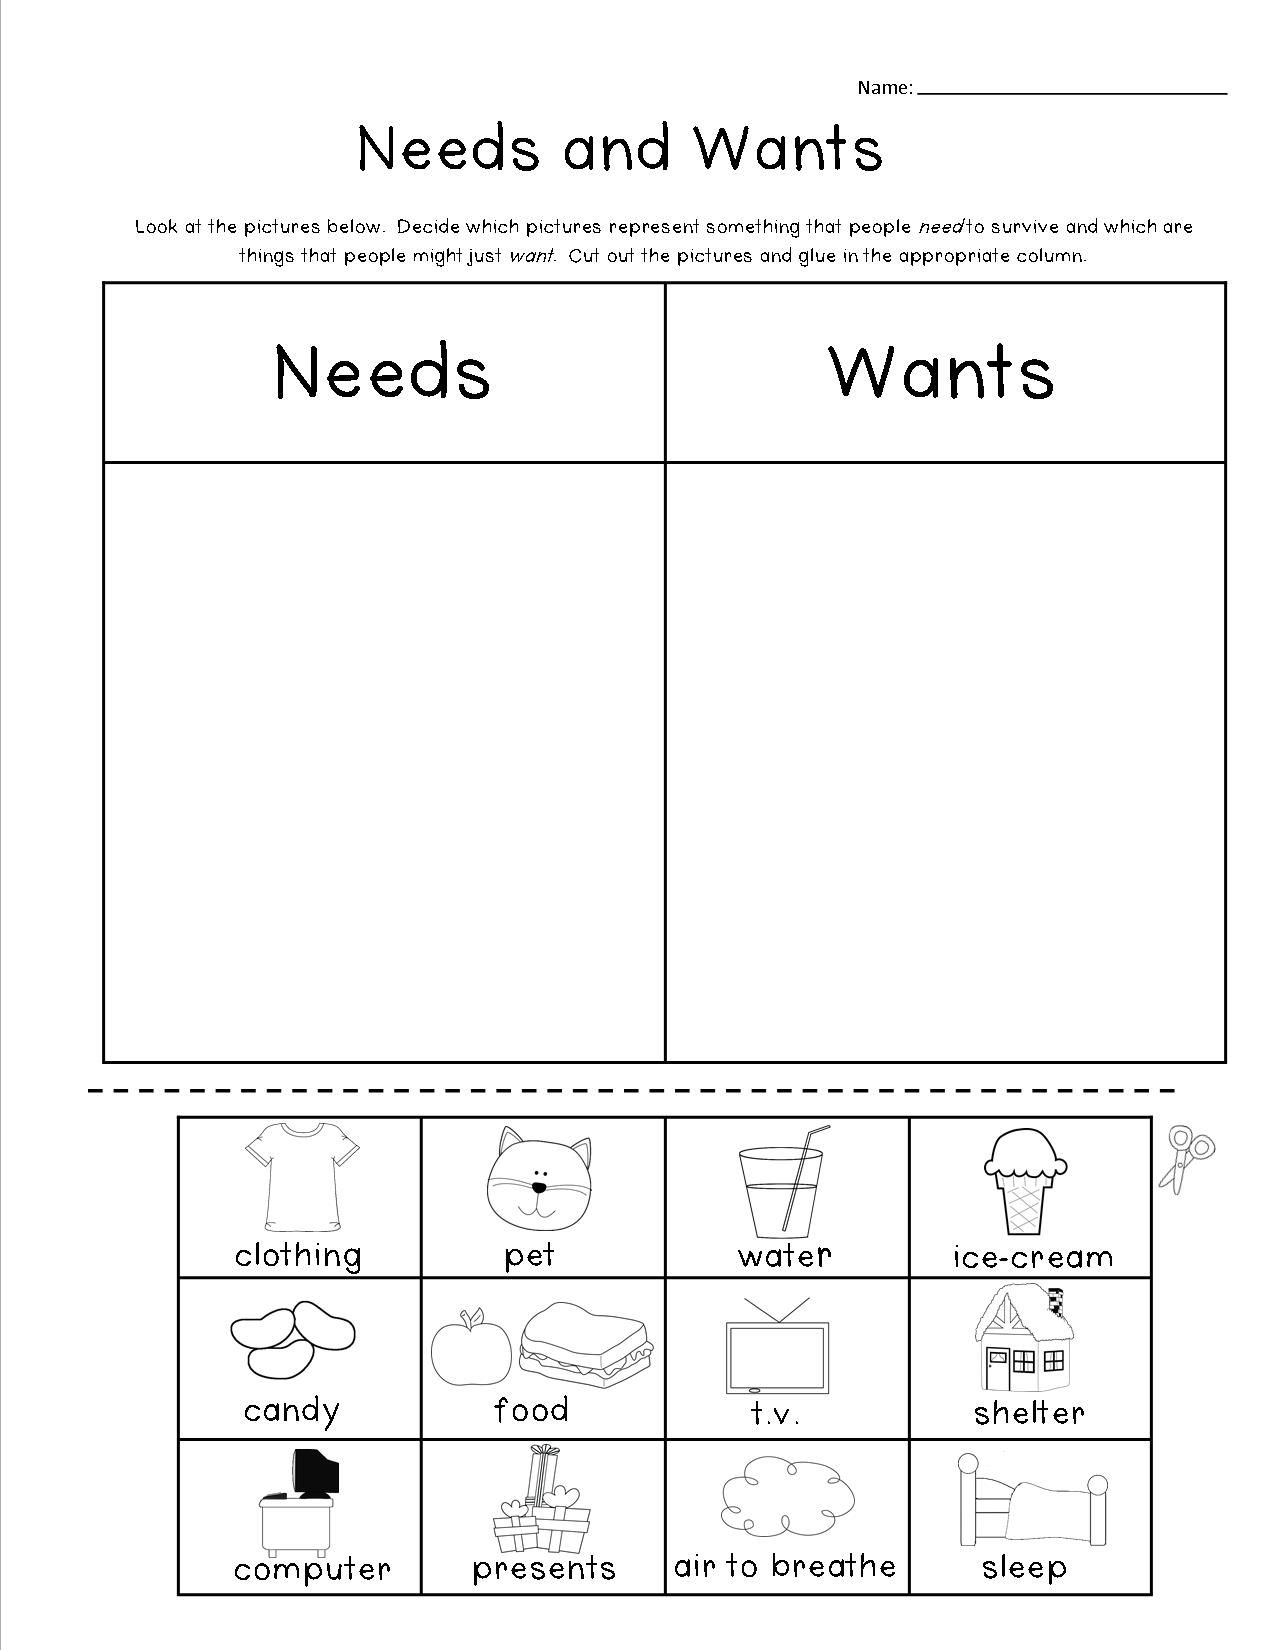 Worksheets Needs And Wants Worksheet Cut And Paste do tornadoes really twist task cards minis cut and paste needs wants includes a sorting activity